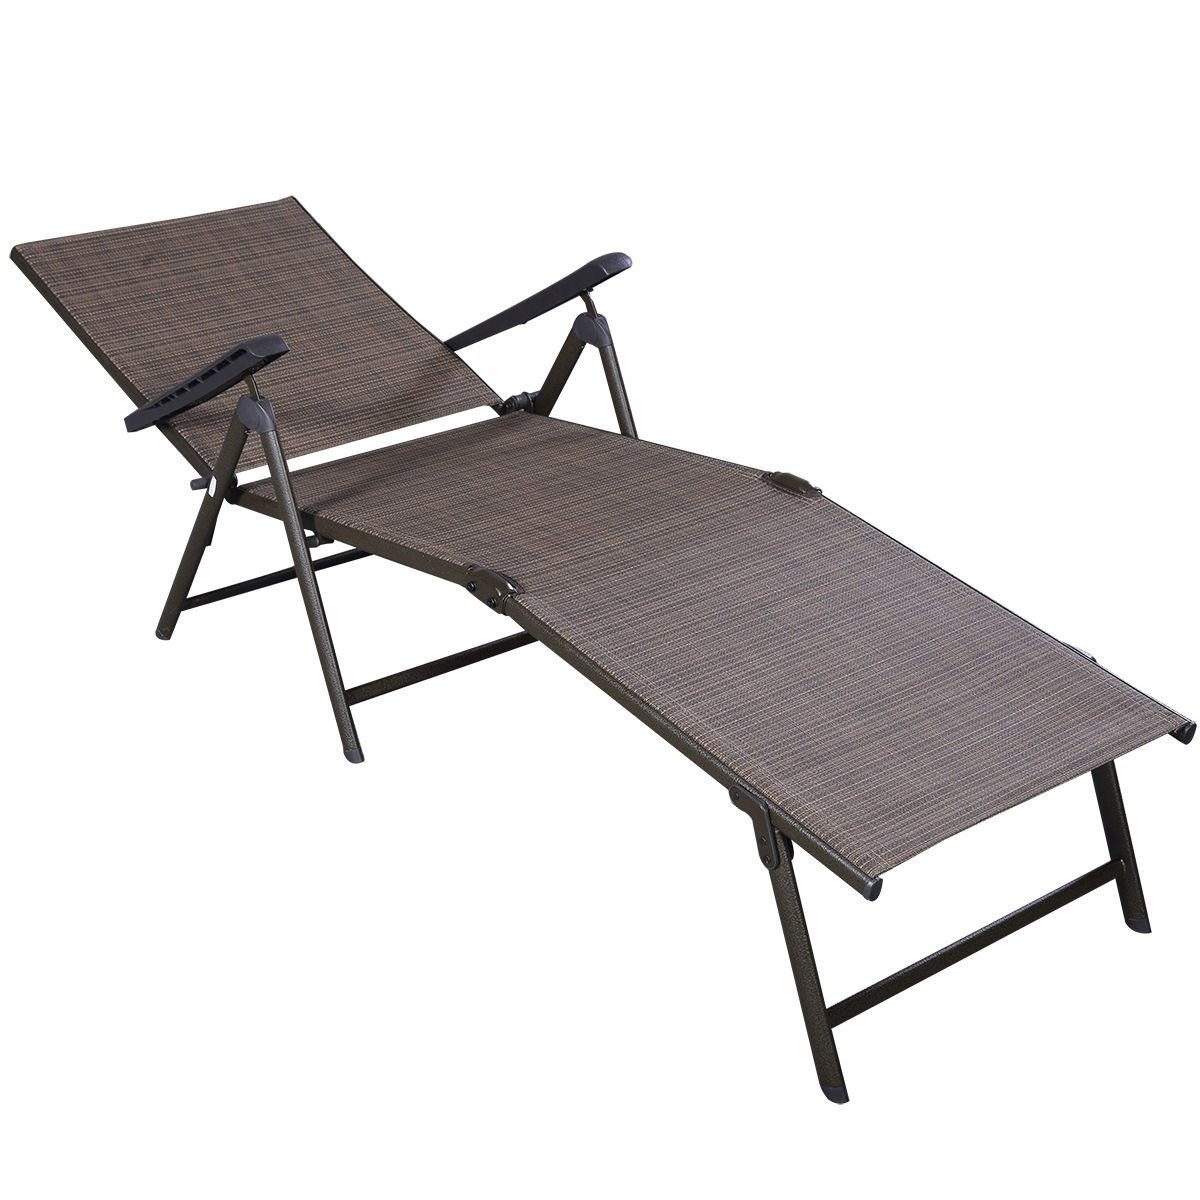 Outdoor Chaise Lounge Chairs Under $100 Throughout Preferred Lounge Chair : Outdoor Setting Sale Cheap Lounge Chairs Pool (View 11 of 15)